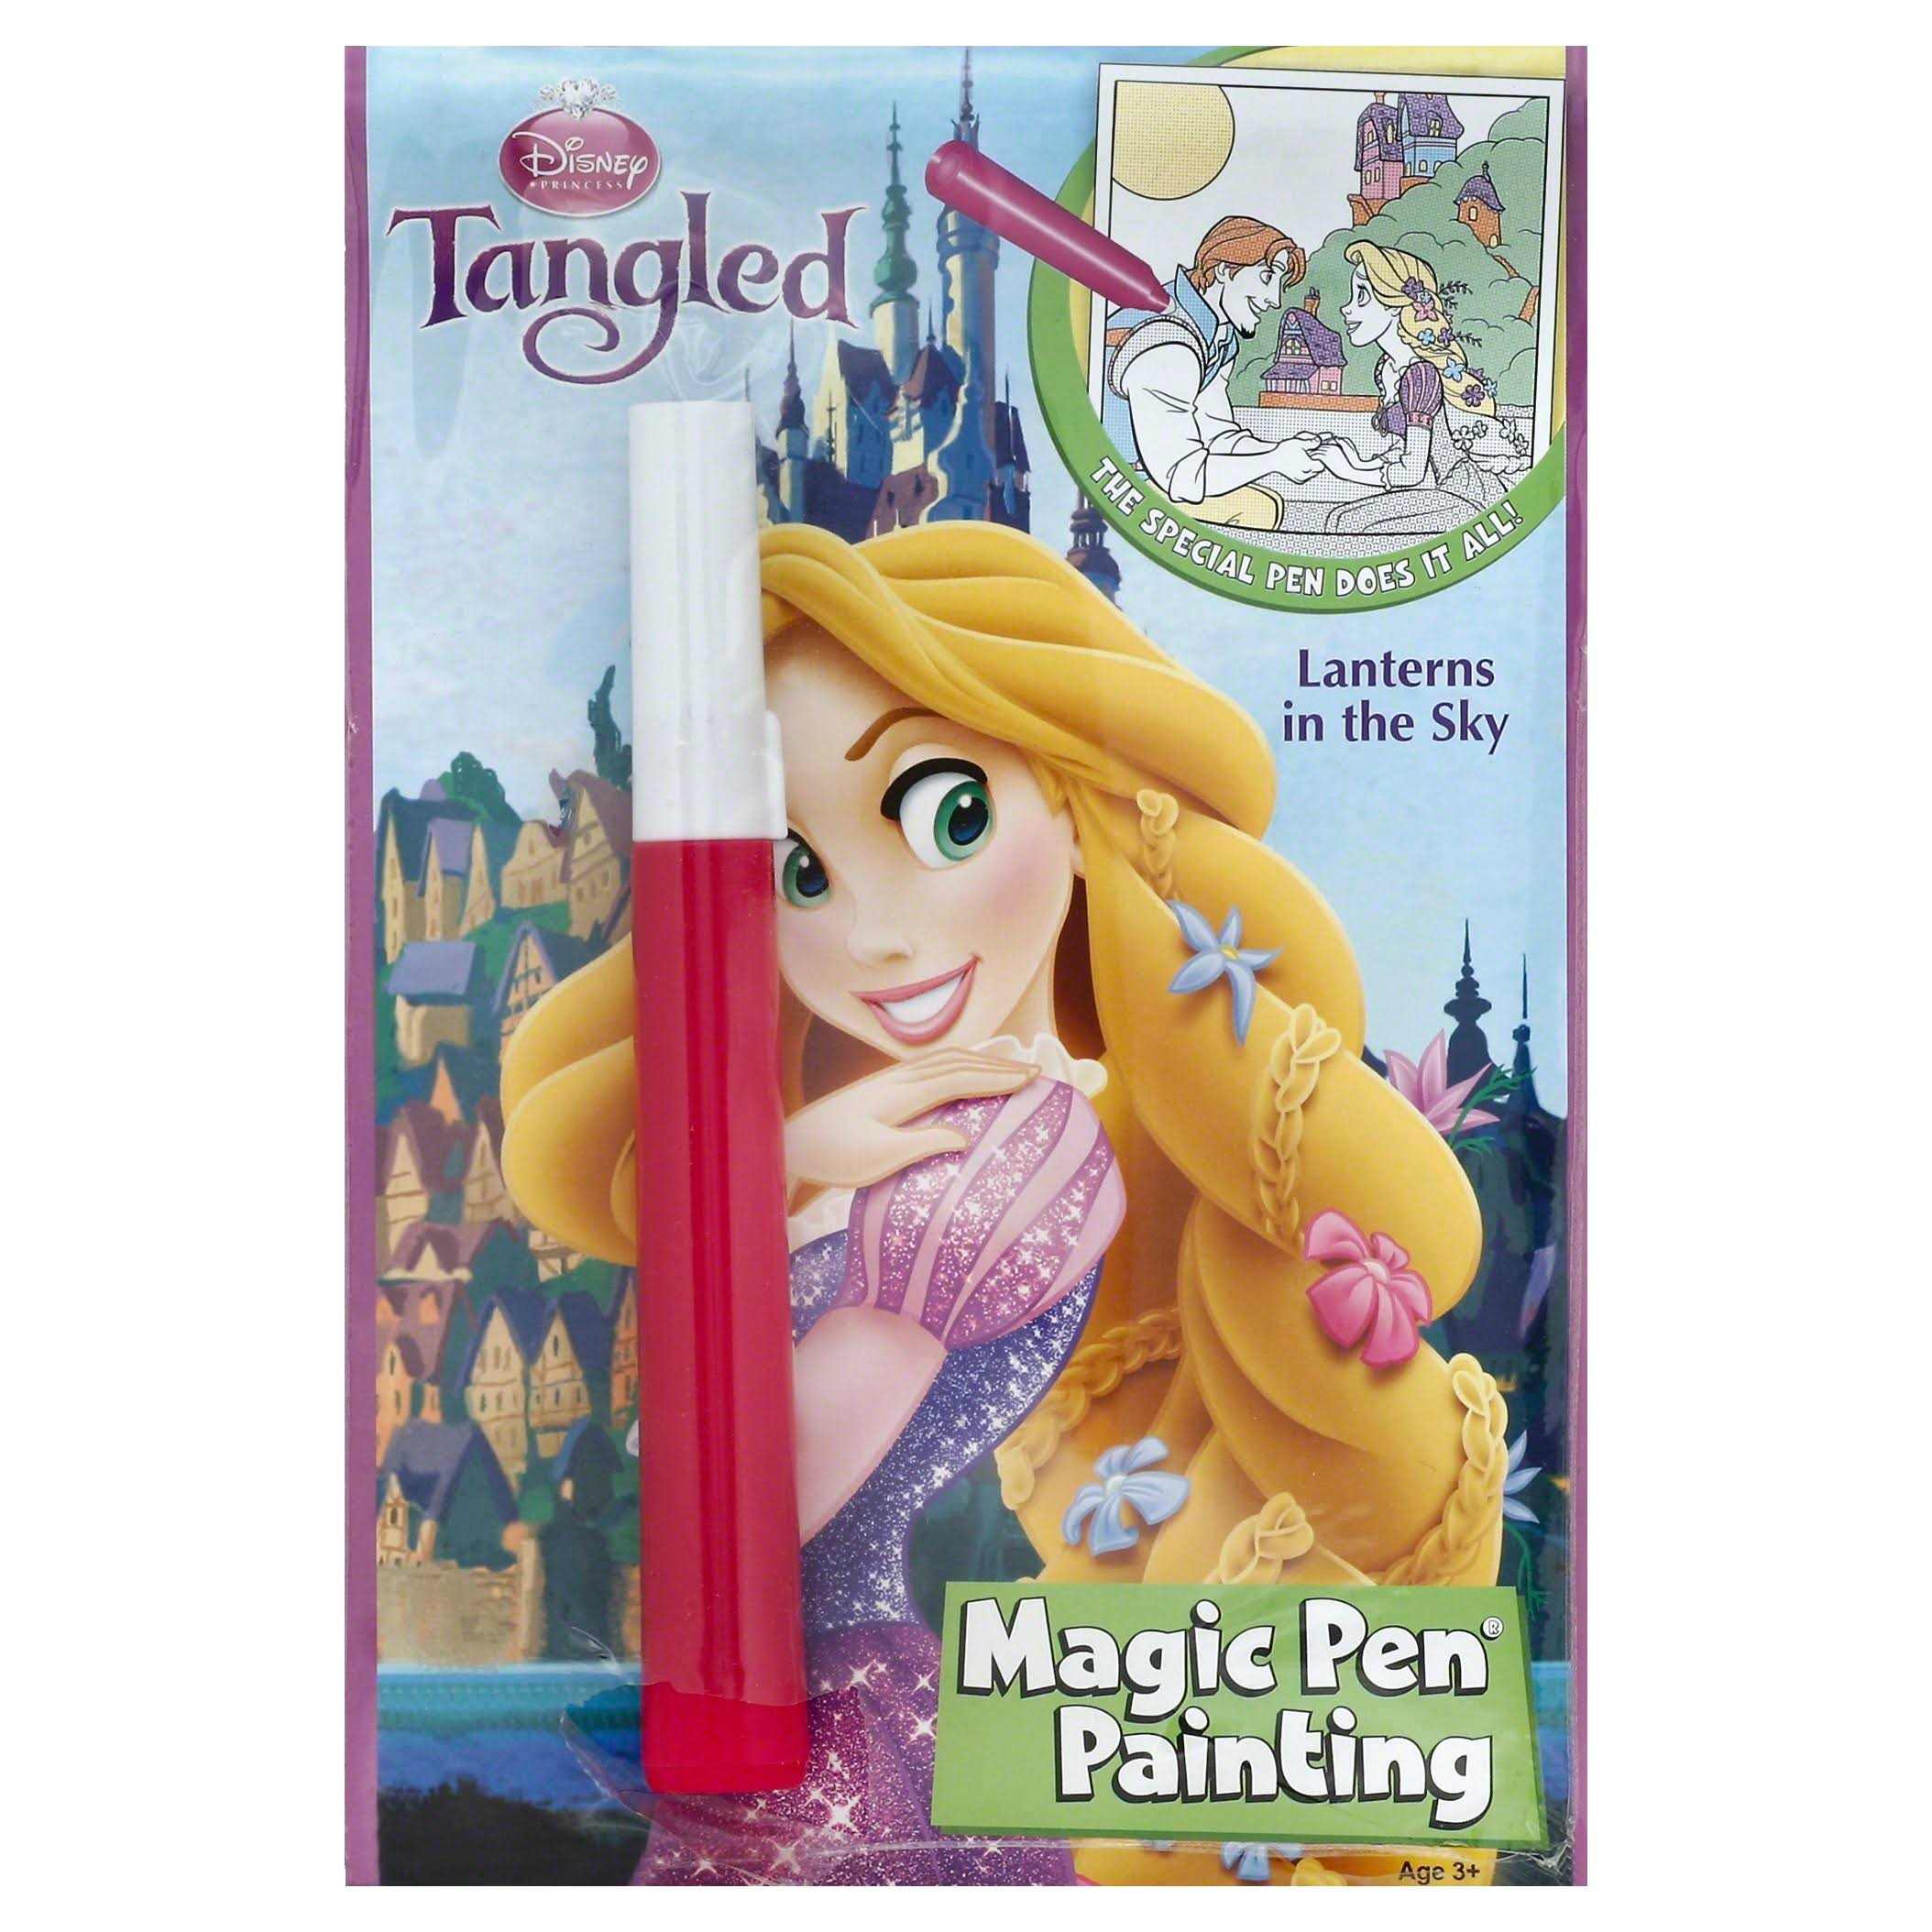 Disney Tangled Magic Pen Painting